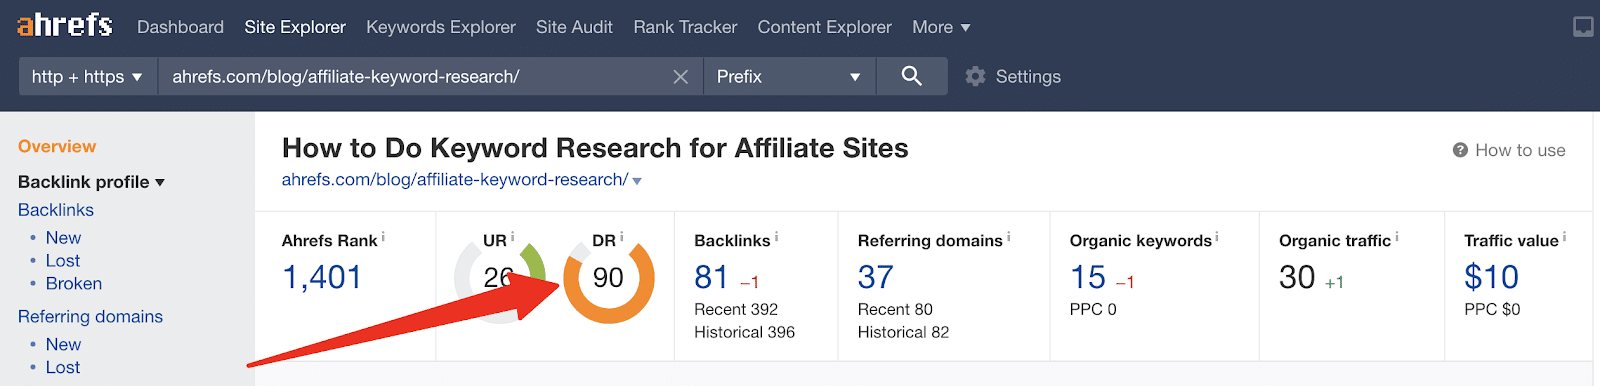 ahrefs displaying a website's authority from its dashboard